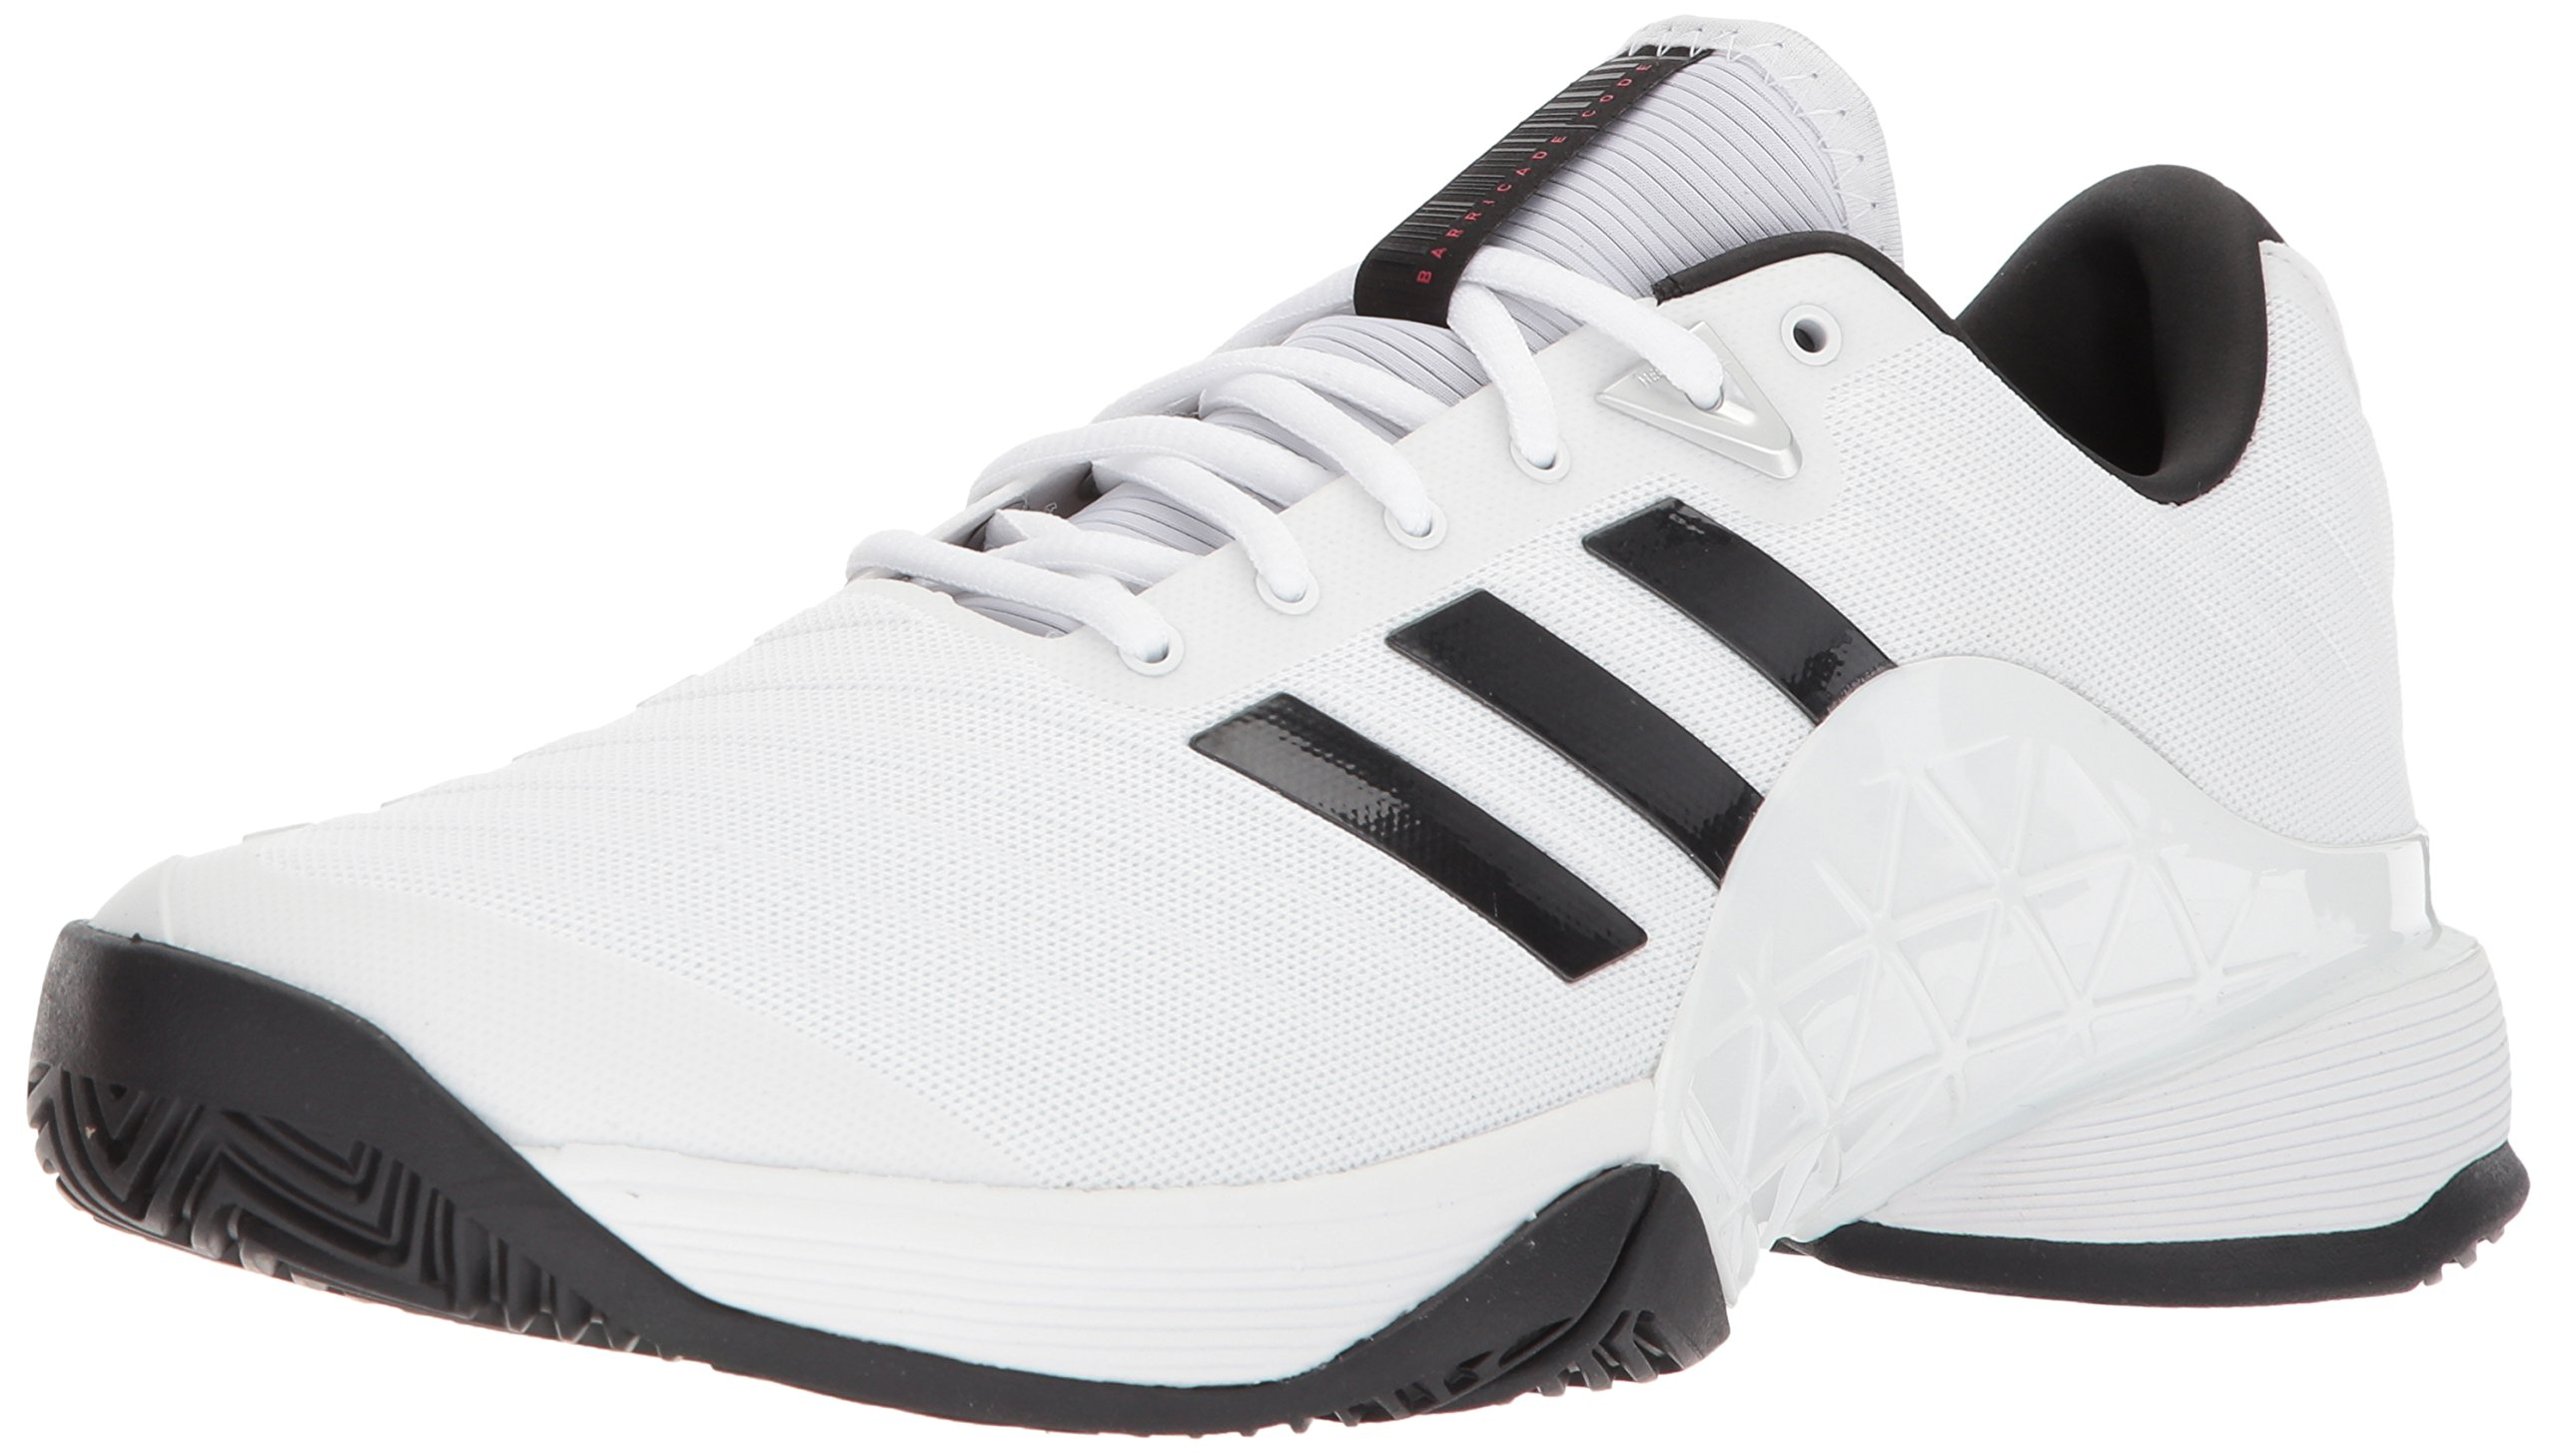 adidas Performance Men's Barricade 2018 Tennis Shoe, White/Black/Matte Silver, 7 M US